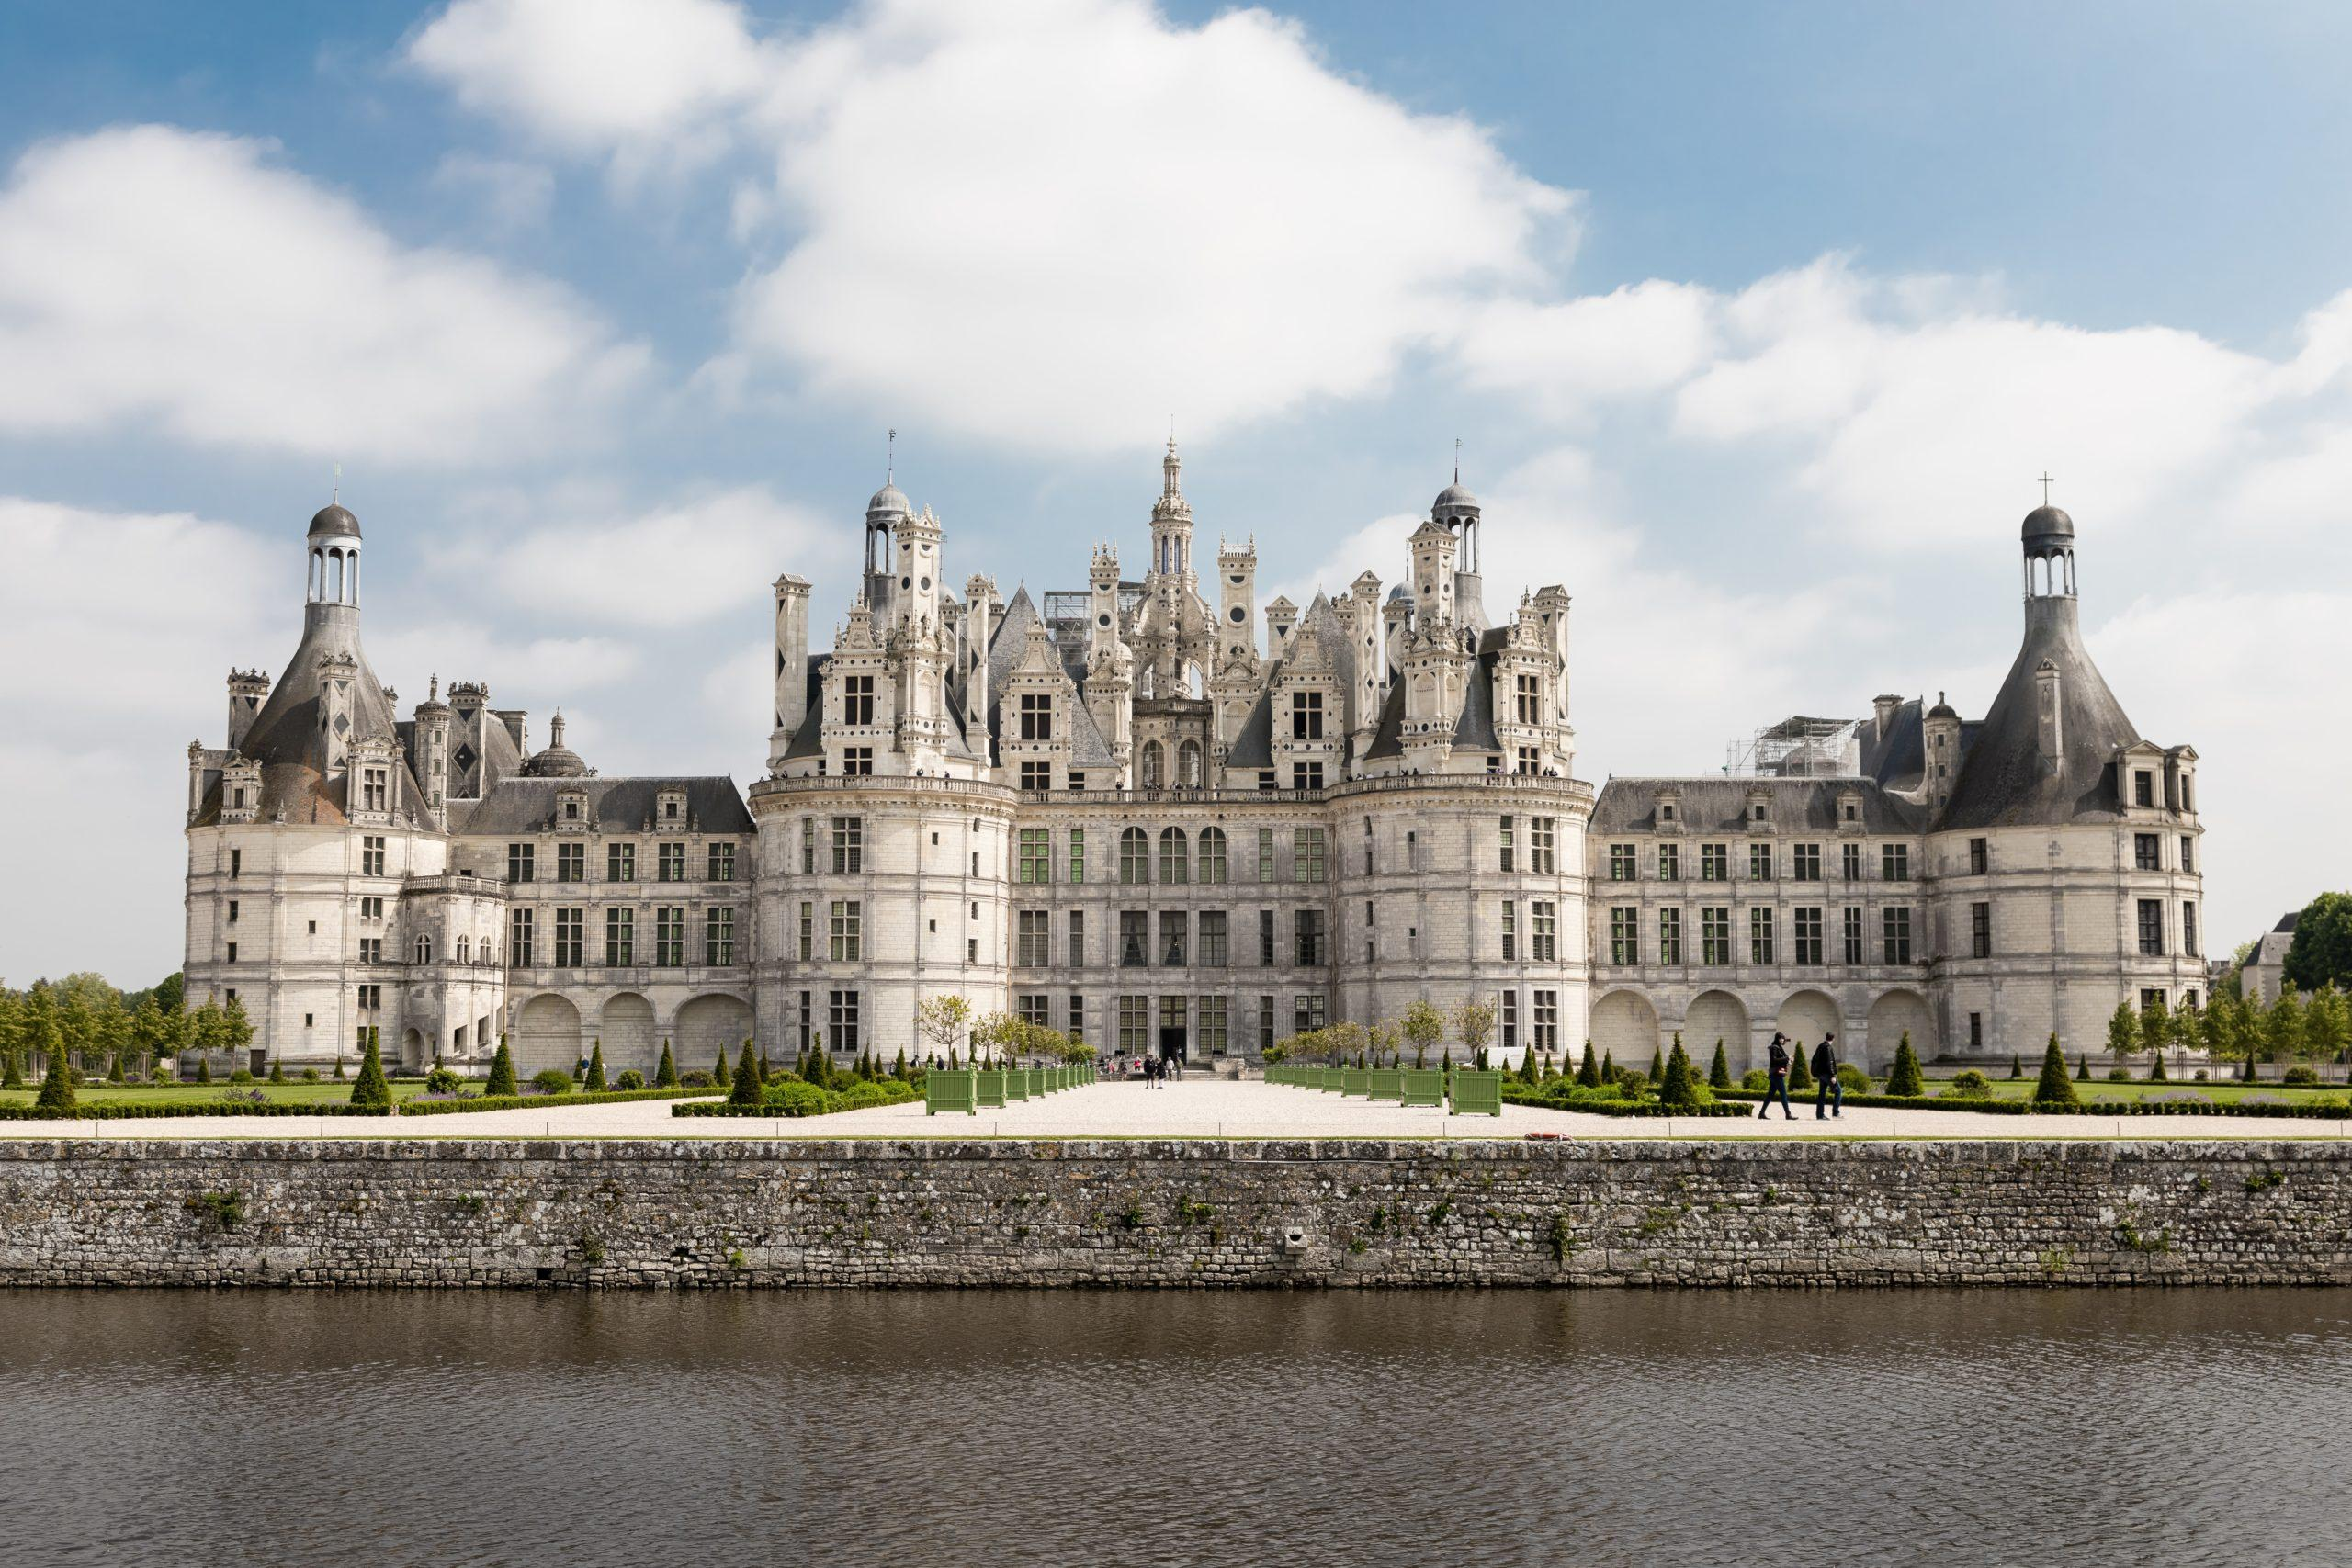 Visit The Most Incredible Castles In France With These Chateau Virtual Tours